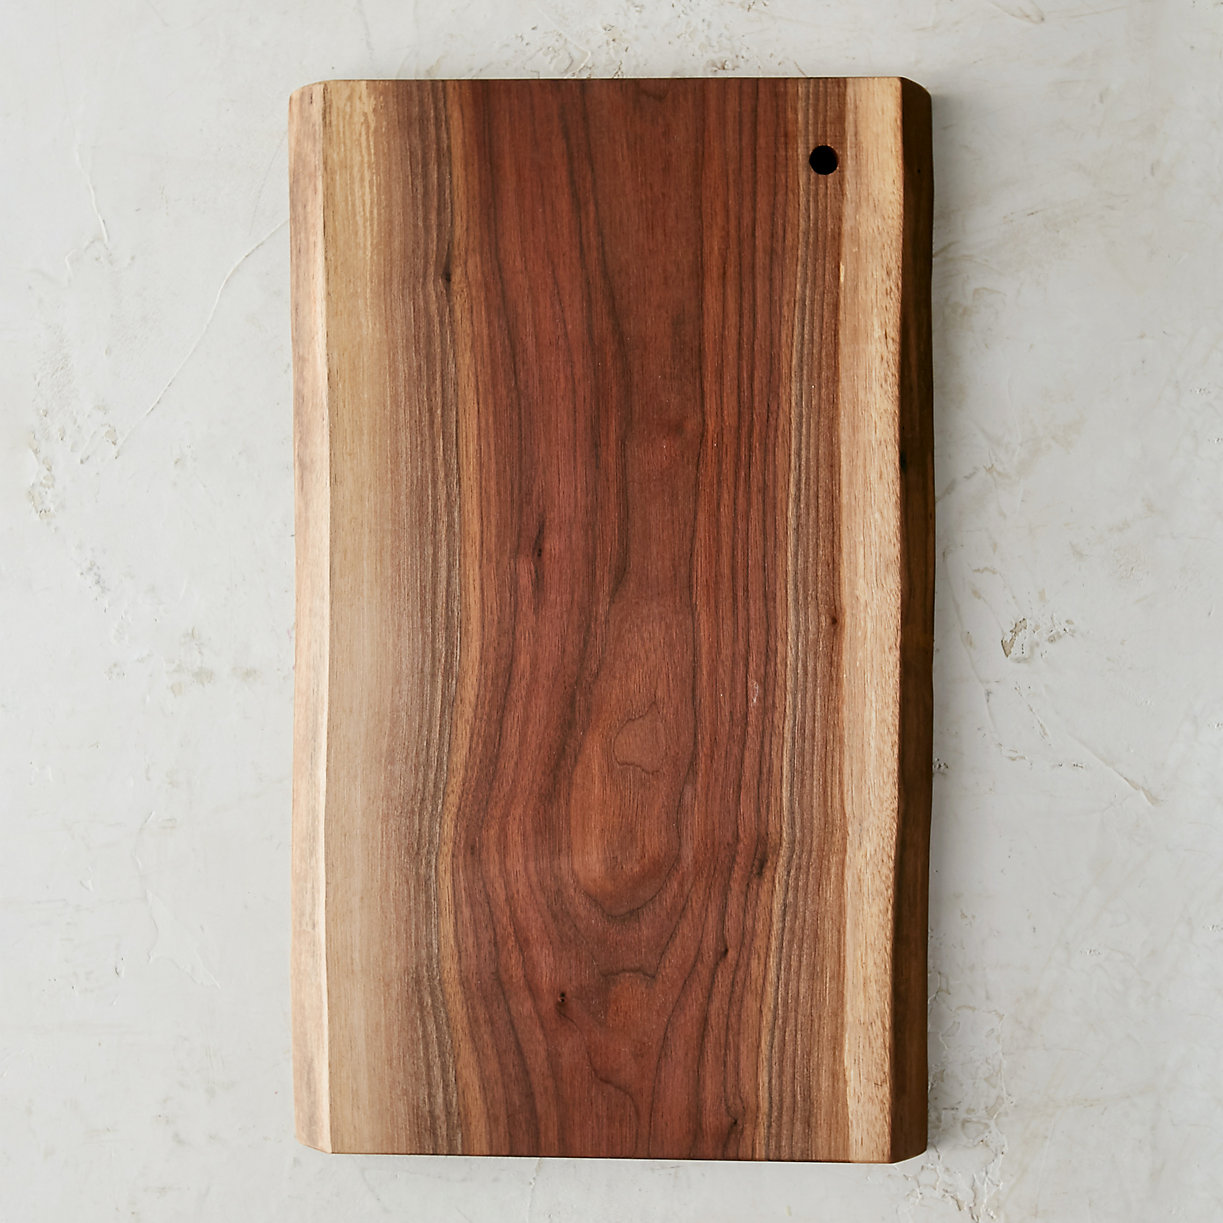 Live Edge Walnut Serving Board. House   Home Sale   Home Decor and Furniture on Sale   Terrain